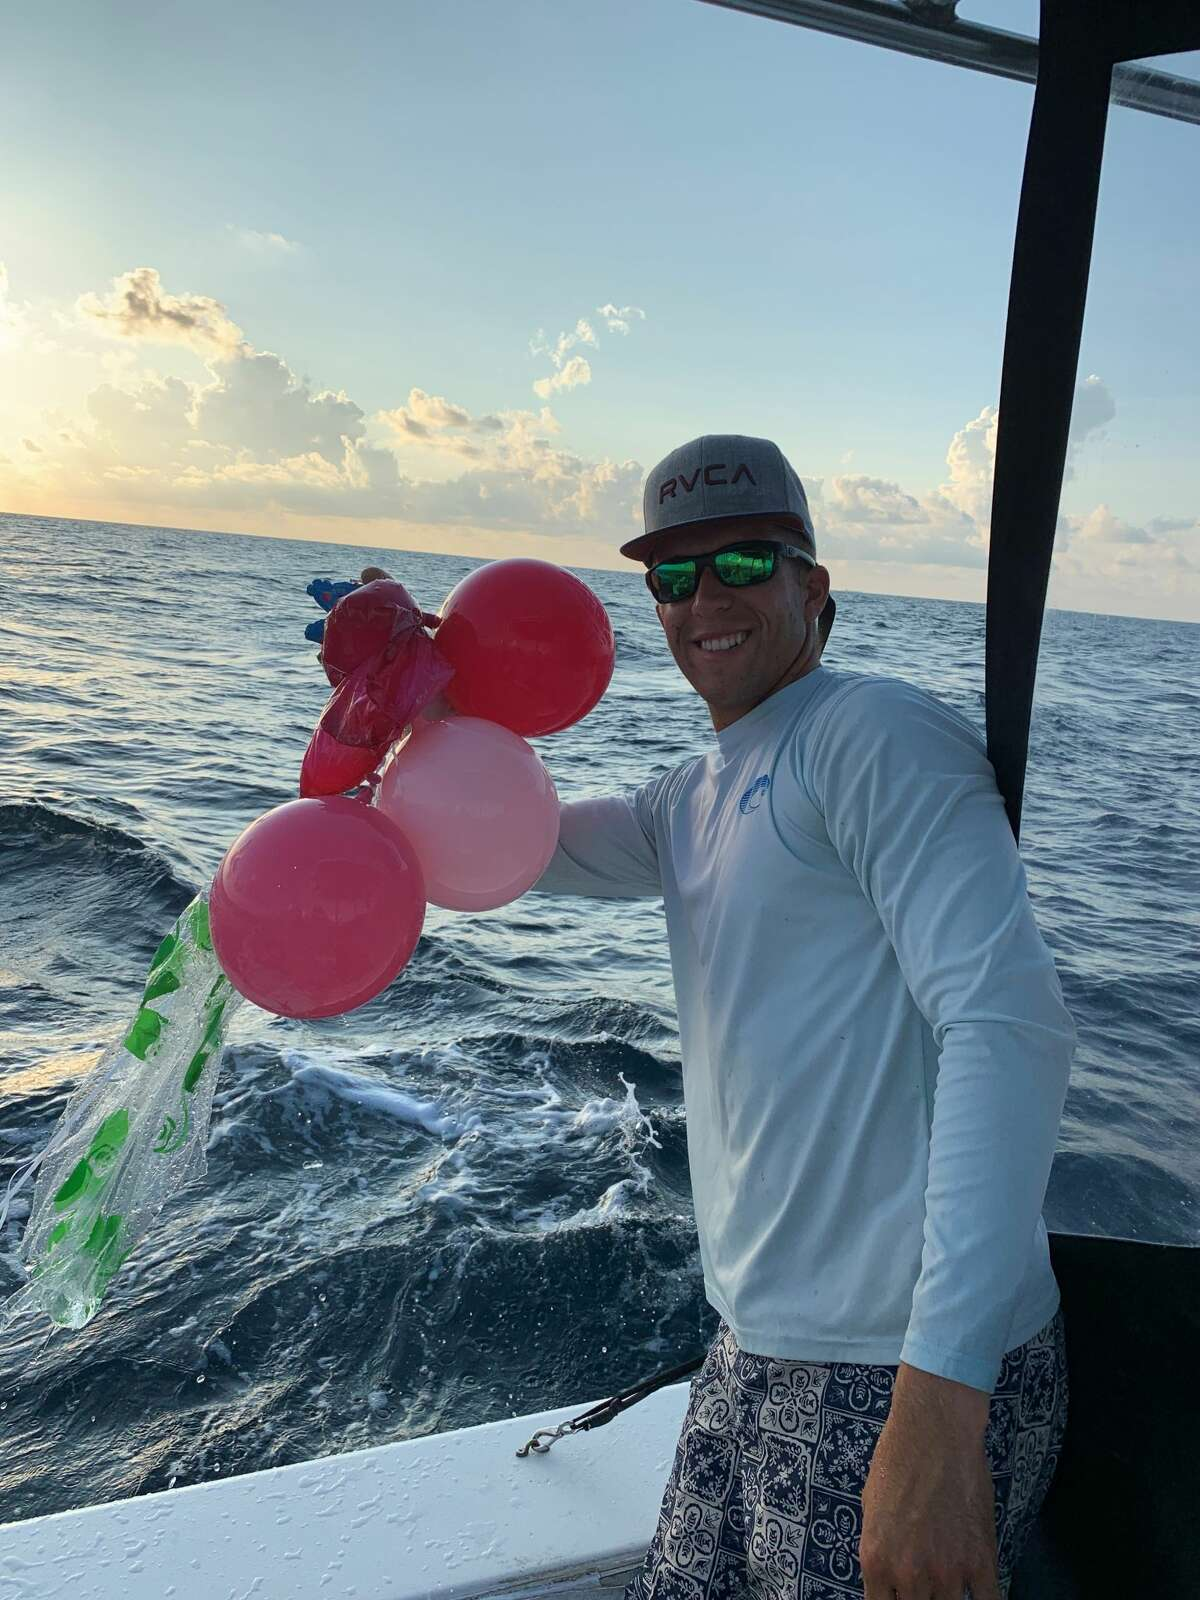 """A group of captains with Galveston Sea Ventures has started a """"balloon roundup"""" challenge to help educate the public on the dangers of balloon releases. Captain Shane Cantrell said sea turtles are especially at risk because they often get tangled in the ribbons or ingest the colorful balloons after mistaking them for jellyfish."""